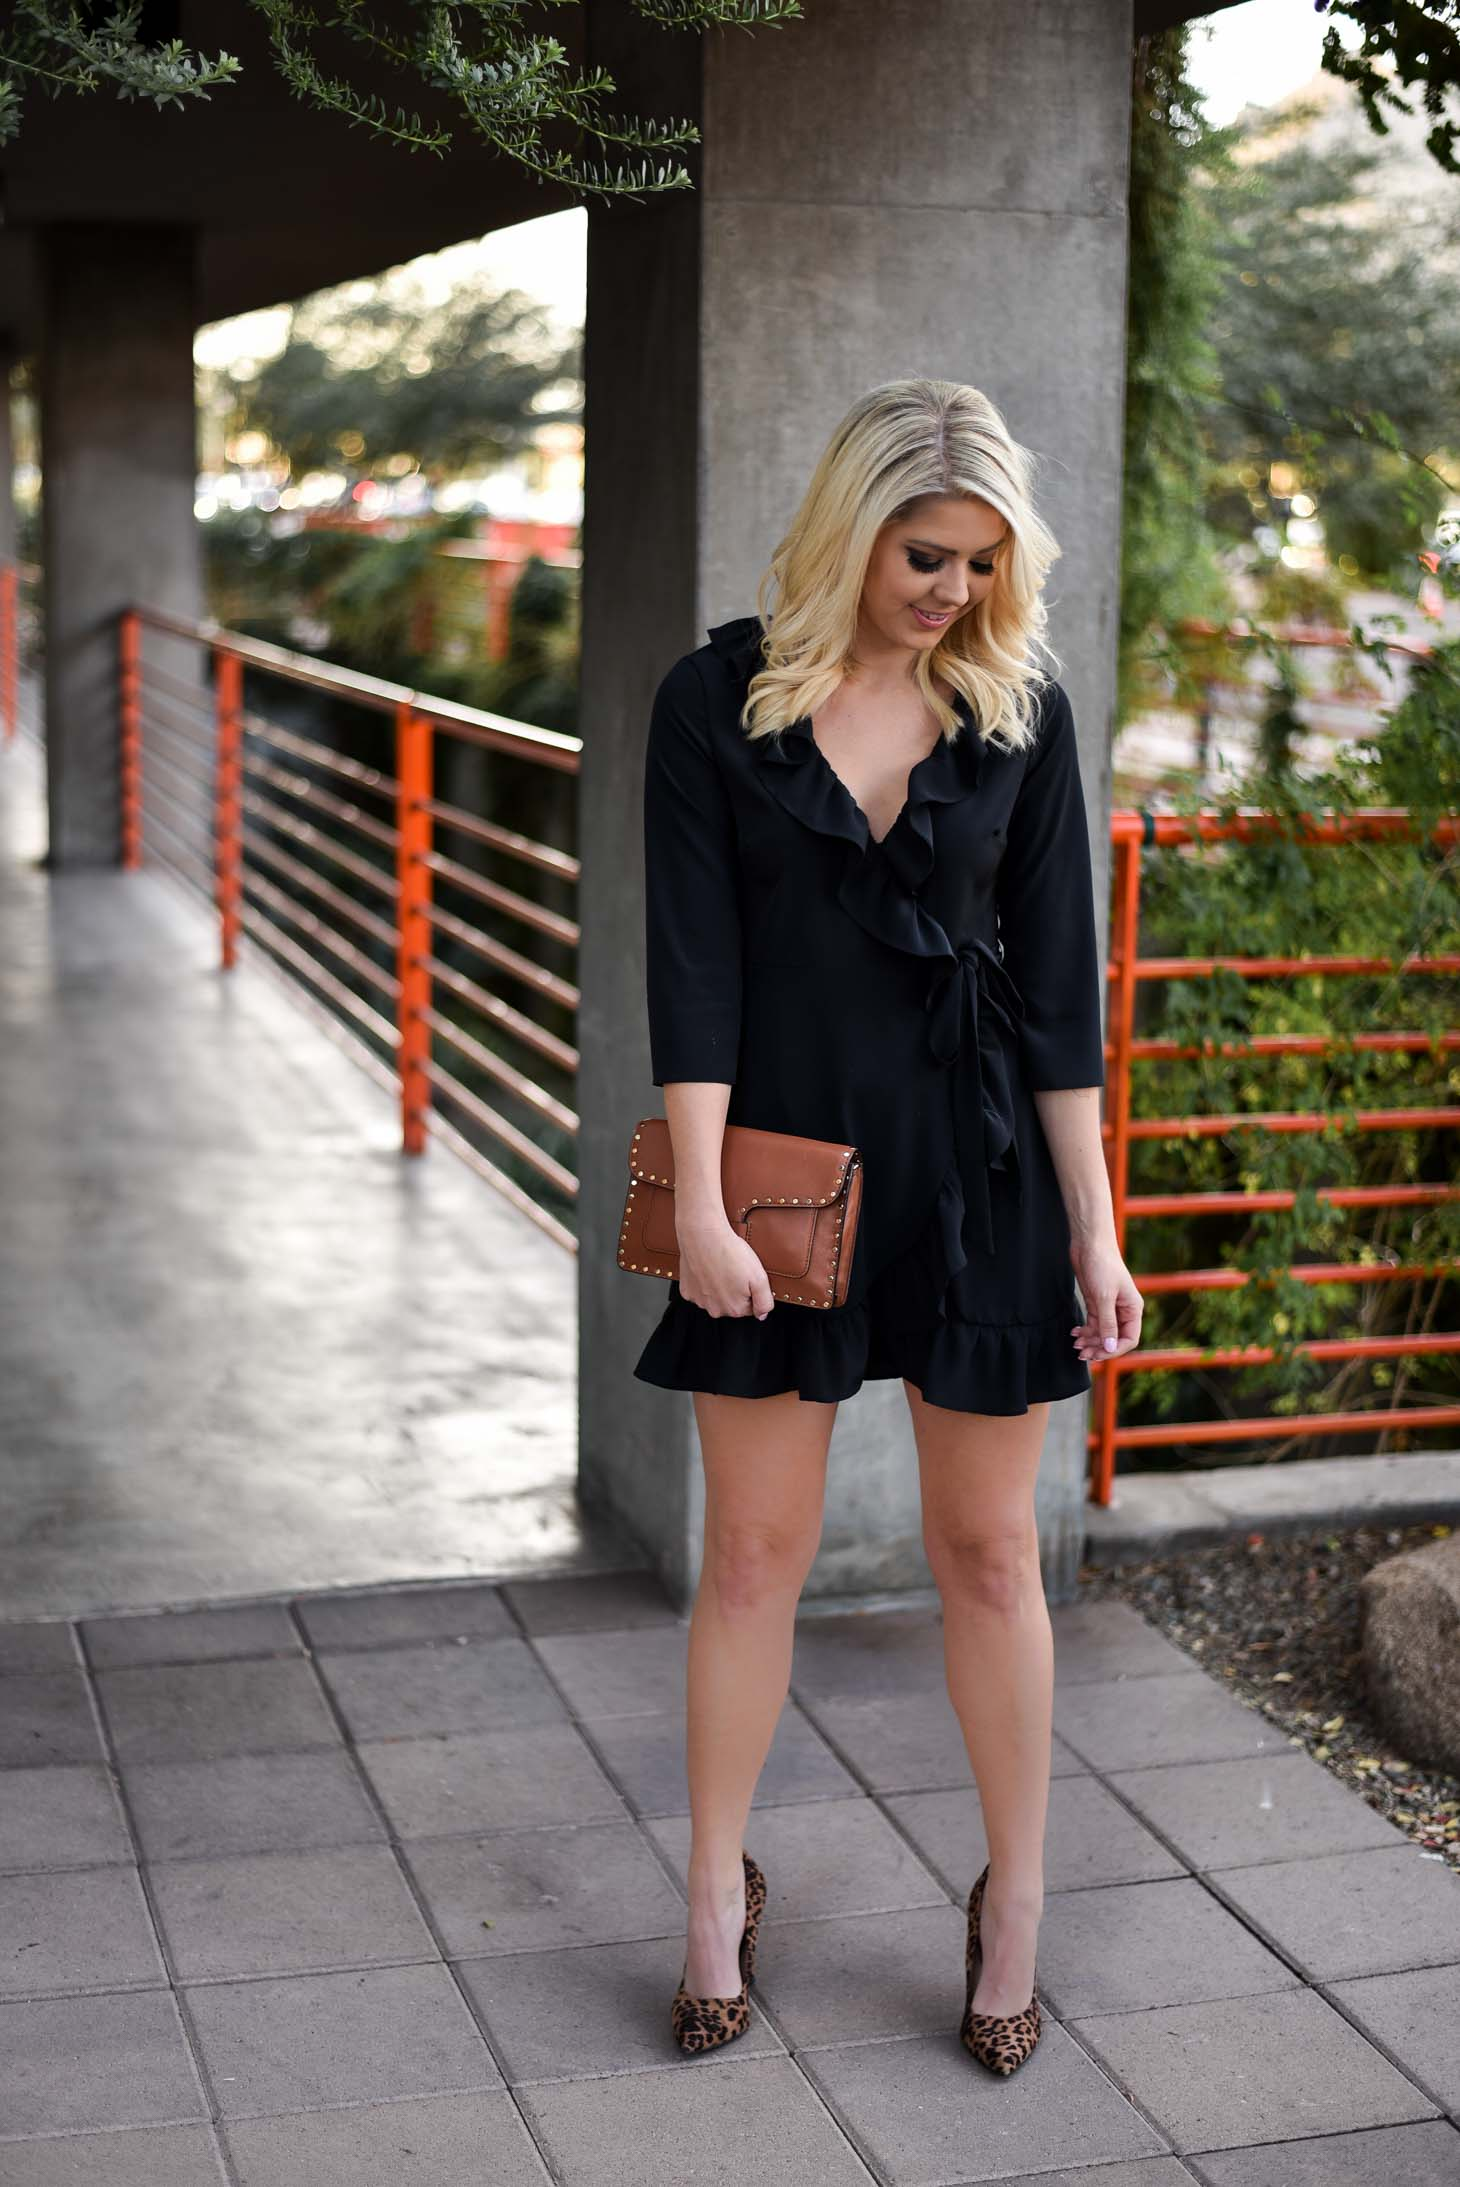 Erin Elizabeth of Wink and a Twirl in LBD